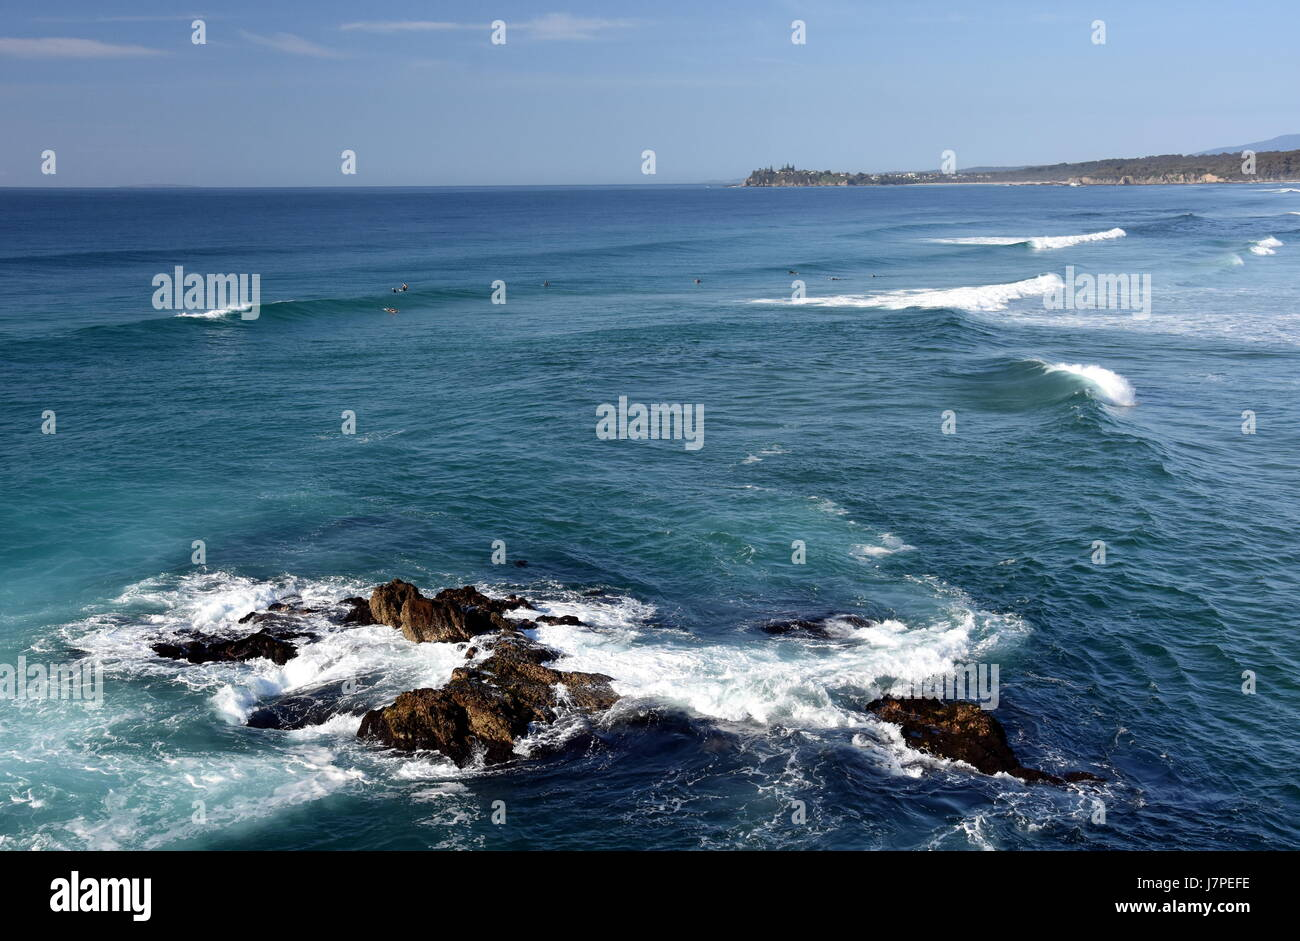 Beach at the Tuross Head. Tuross Head is a seaside village on the south coast of New South Wales Australia. Potato - Stock Image